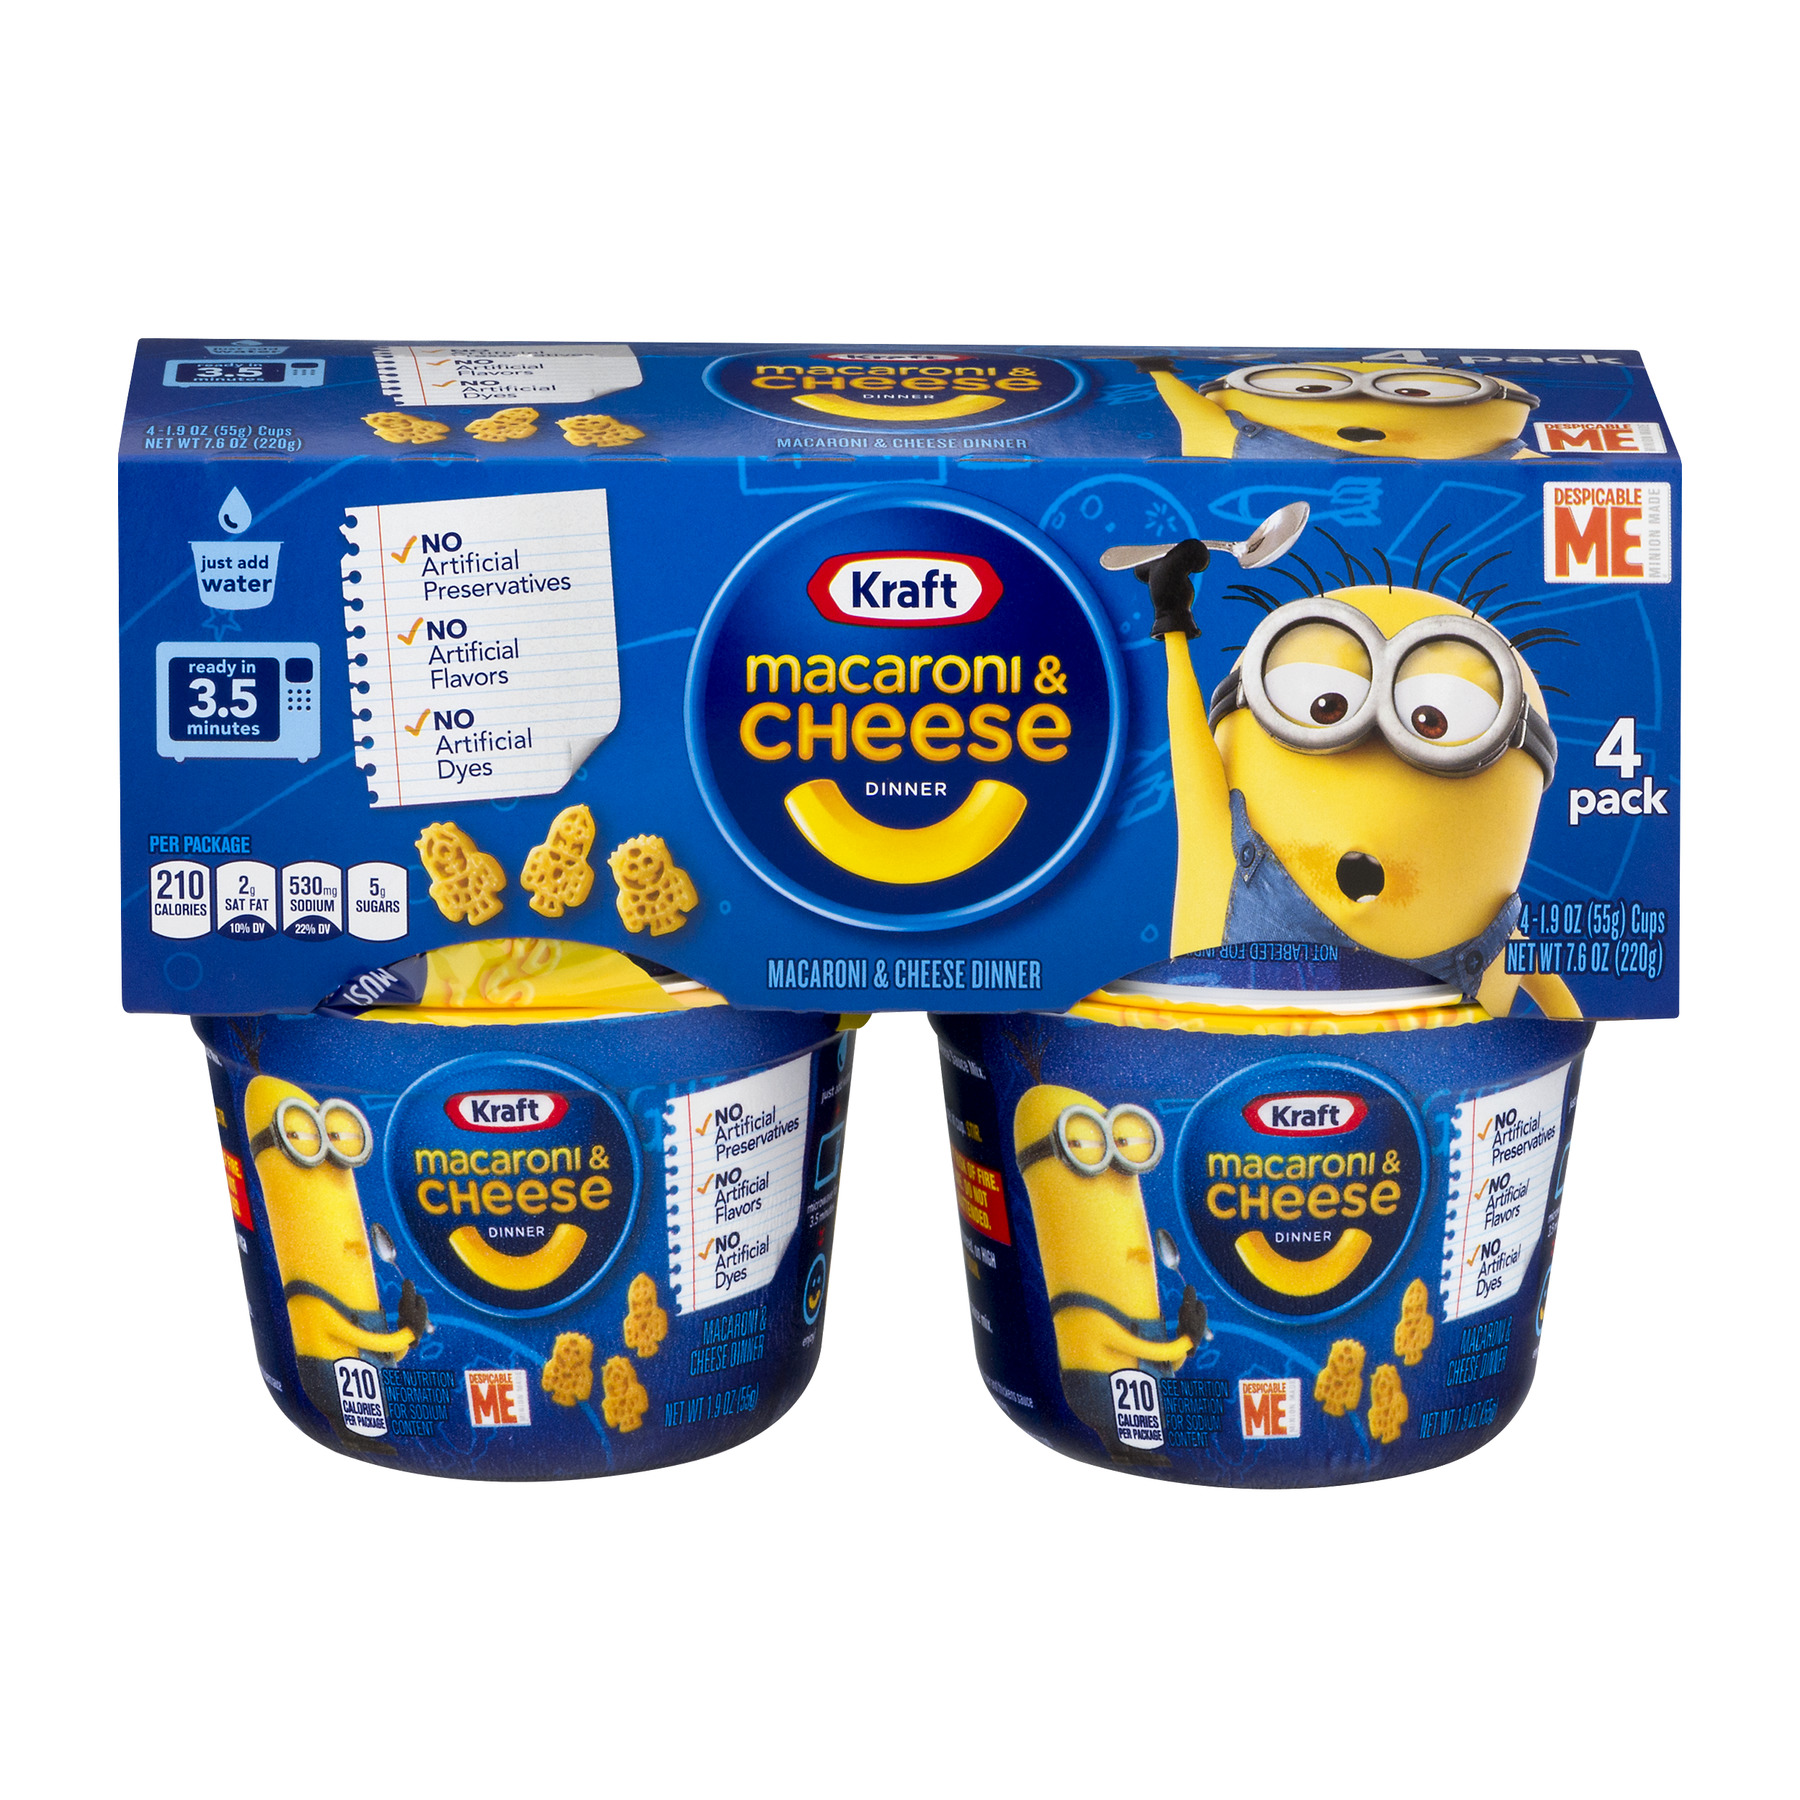 Kraft Macaroni & Cheese Dinner Despicable Me Shapes - 4 PK, 1.9 OZ